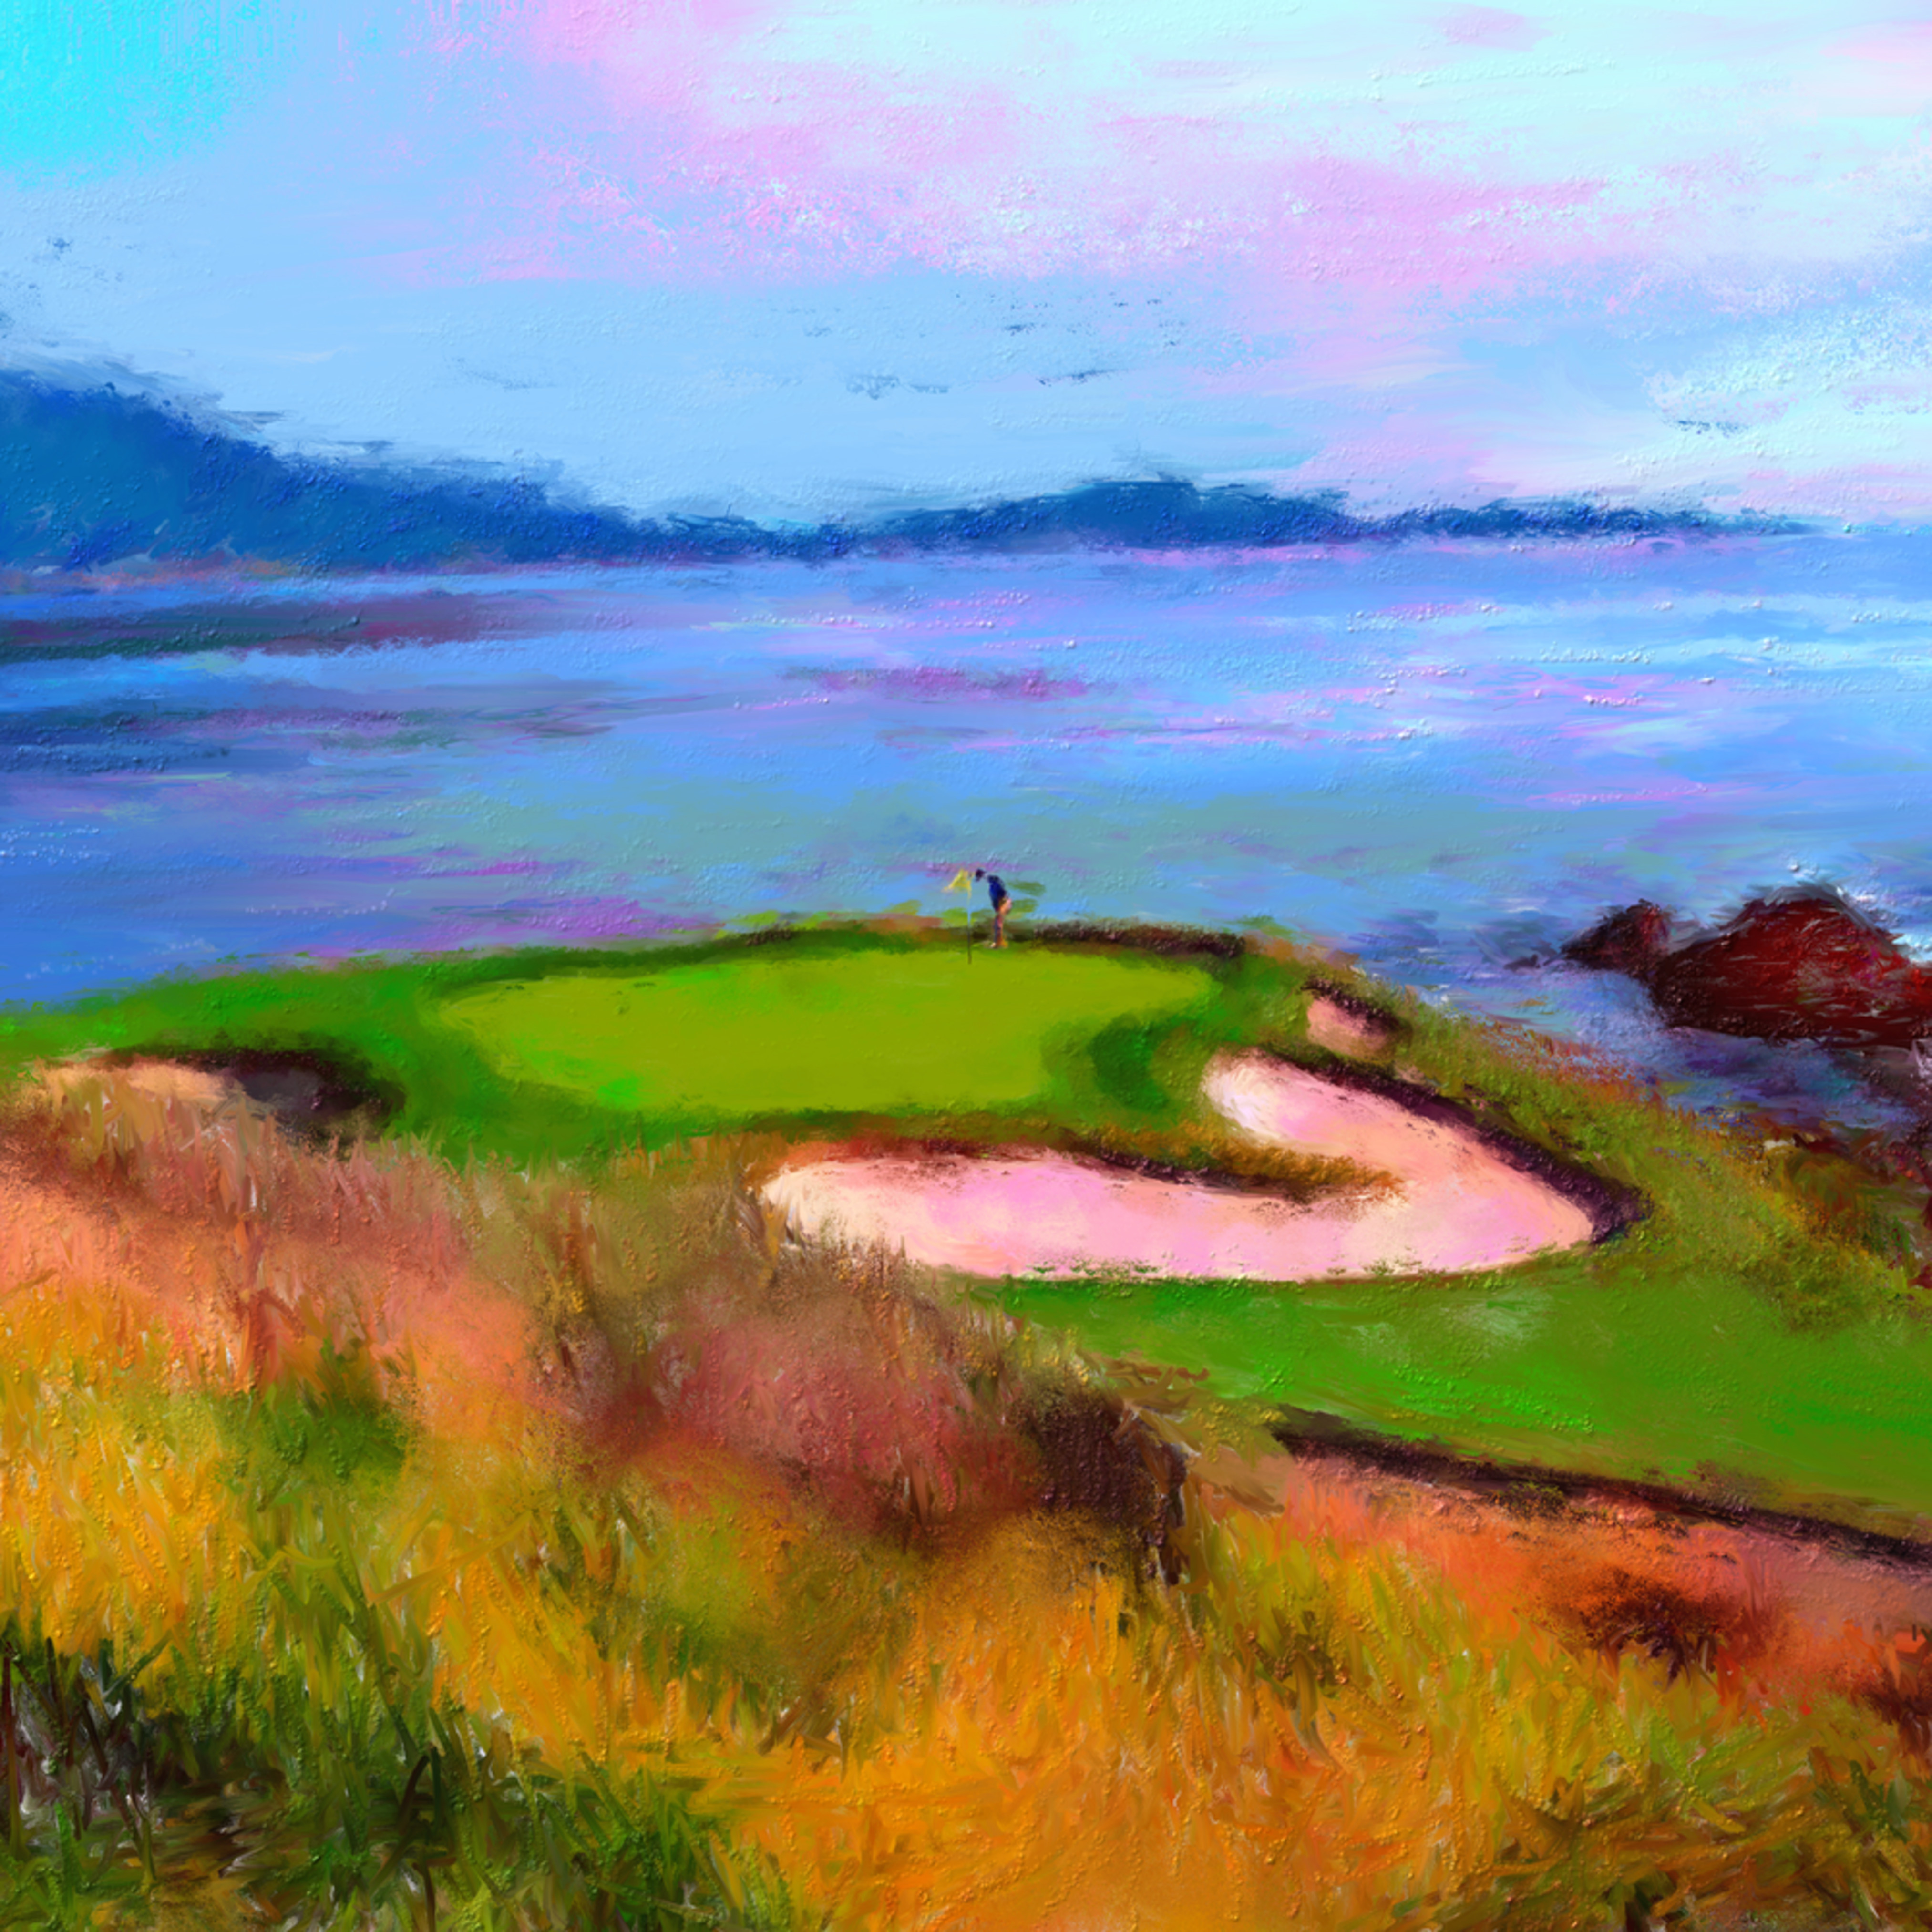 Pebble beach revised f ulohat